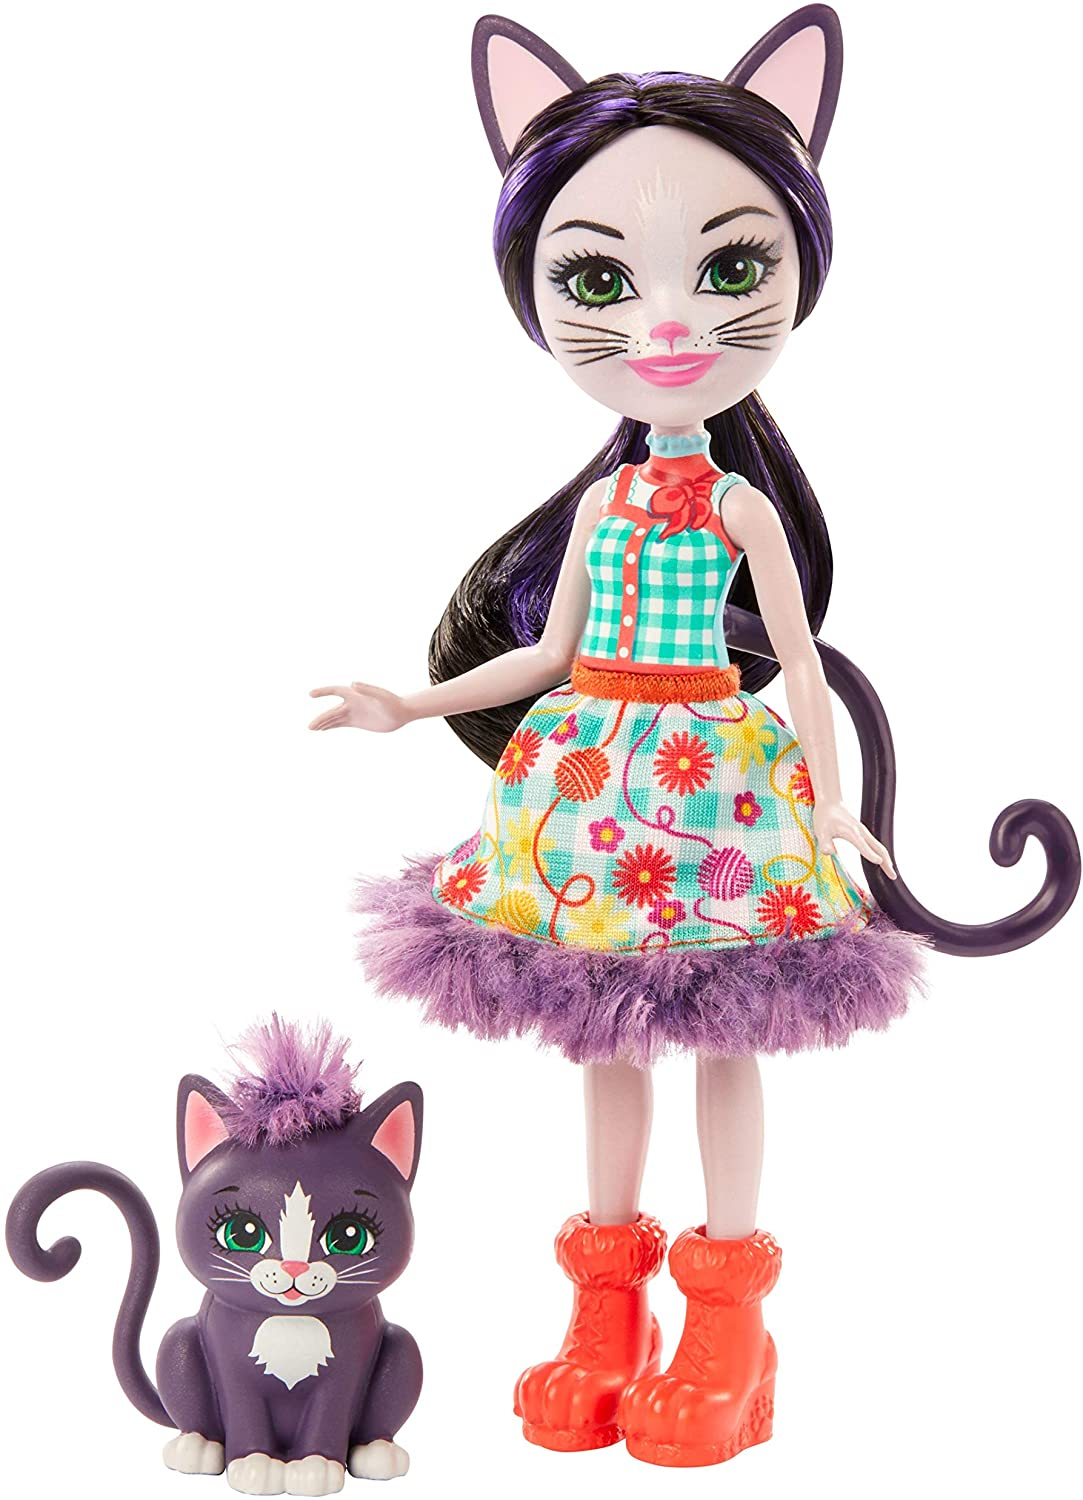 Enchantimals- Ciesta Cat con Mascota Climber, Muñeca, Multicolor (Mattel GJX40)